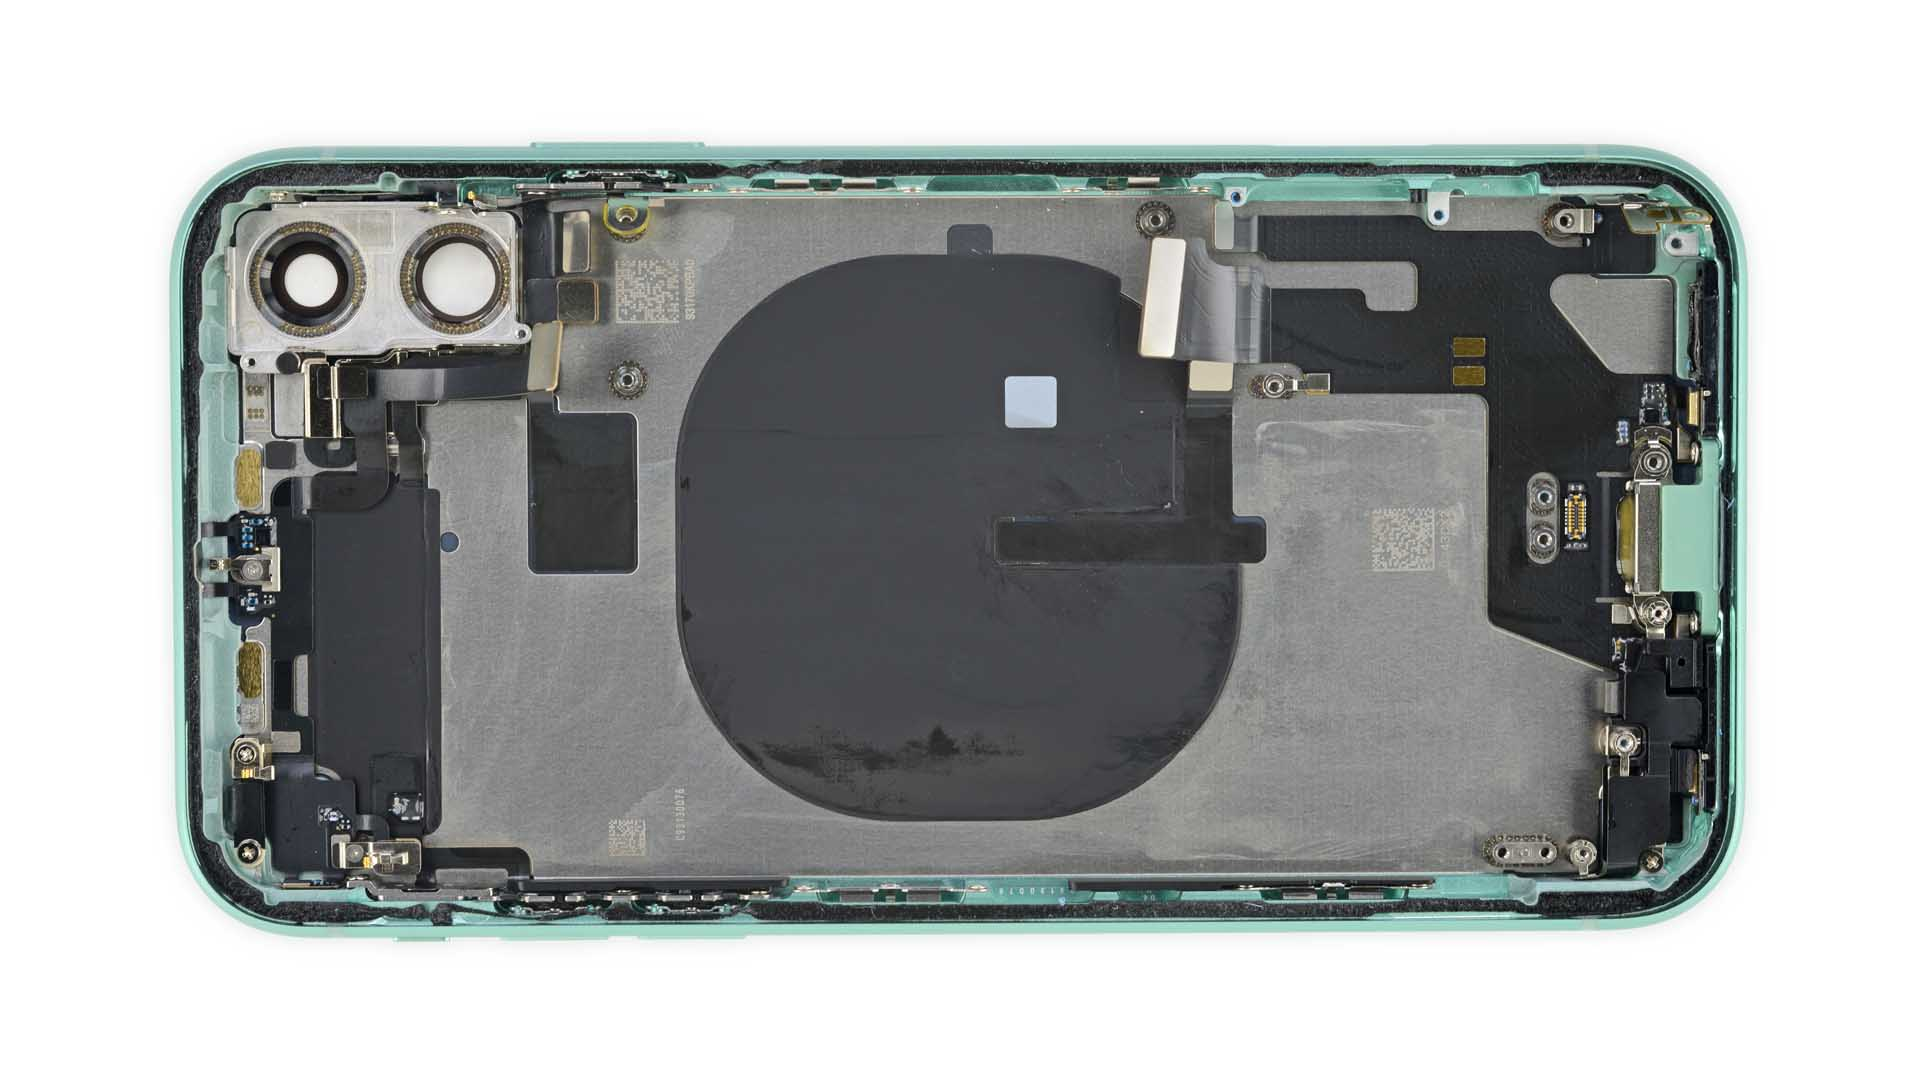 The empty back case of an iPhone 11.